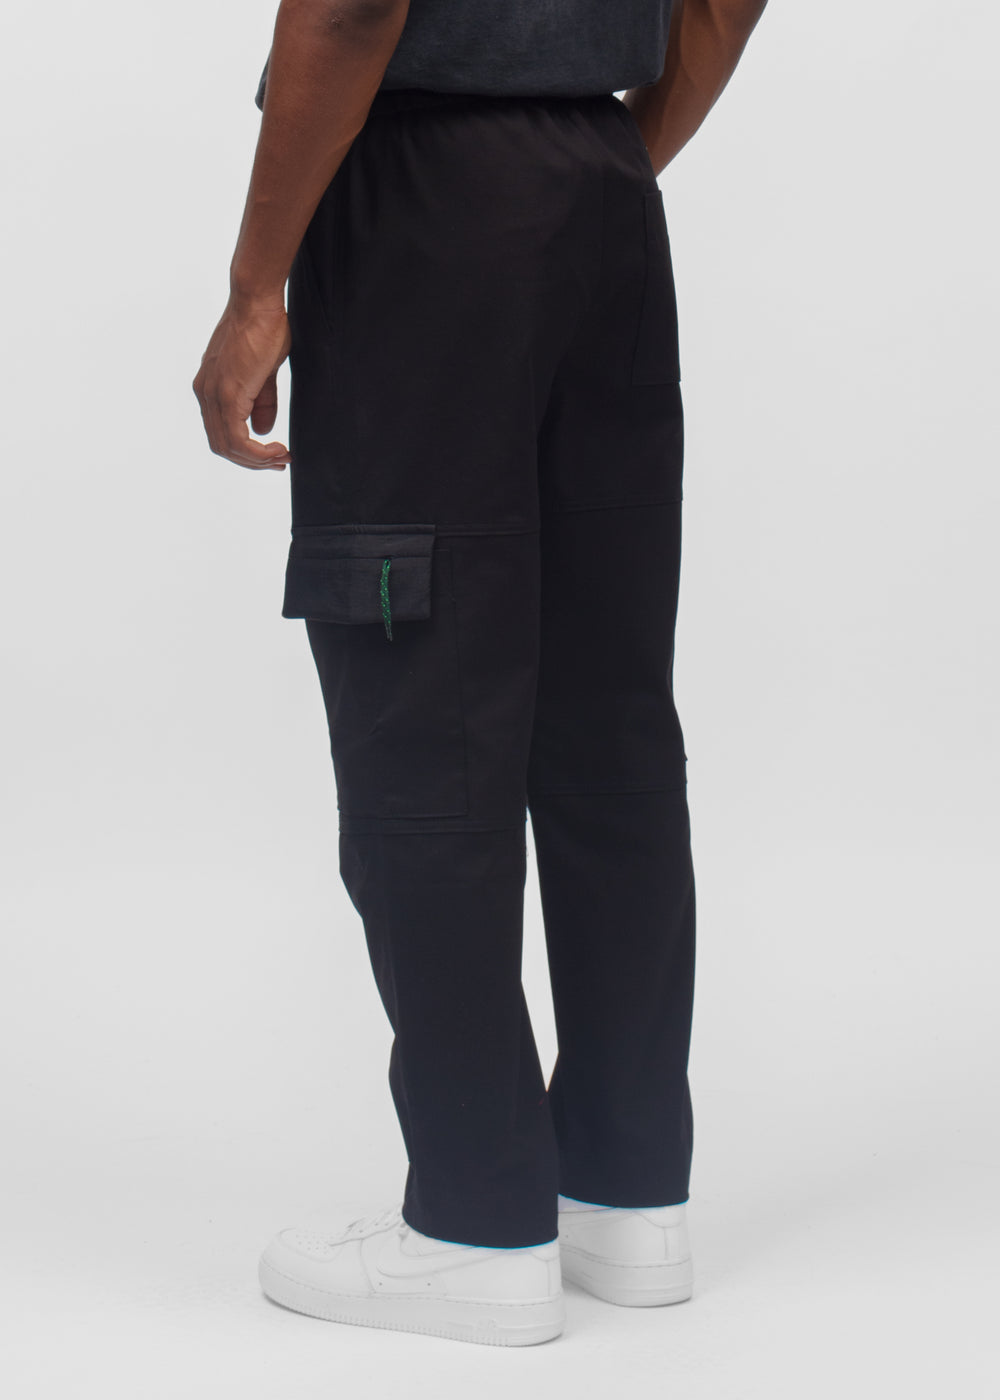 tapered-cargo-pant-f965pa2161ra-99-blk-3